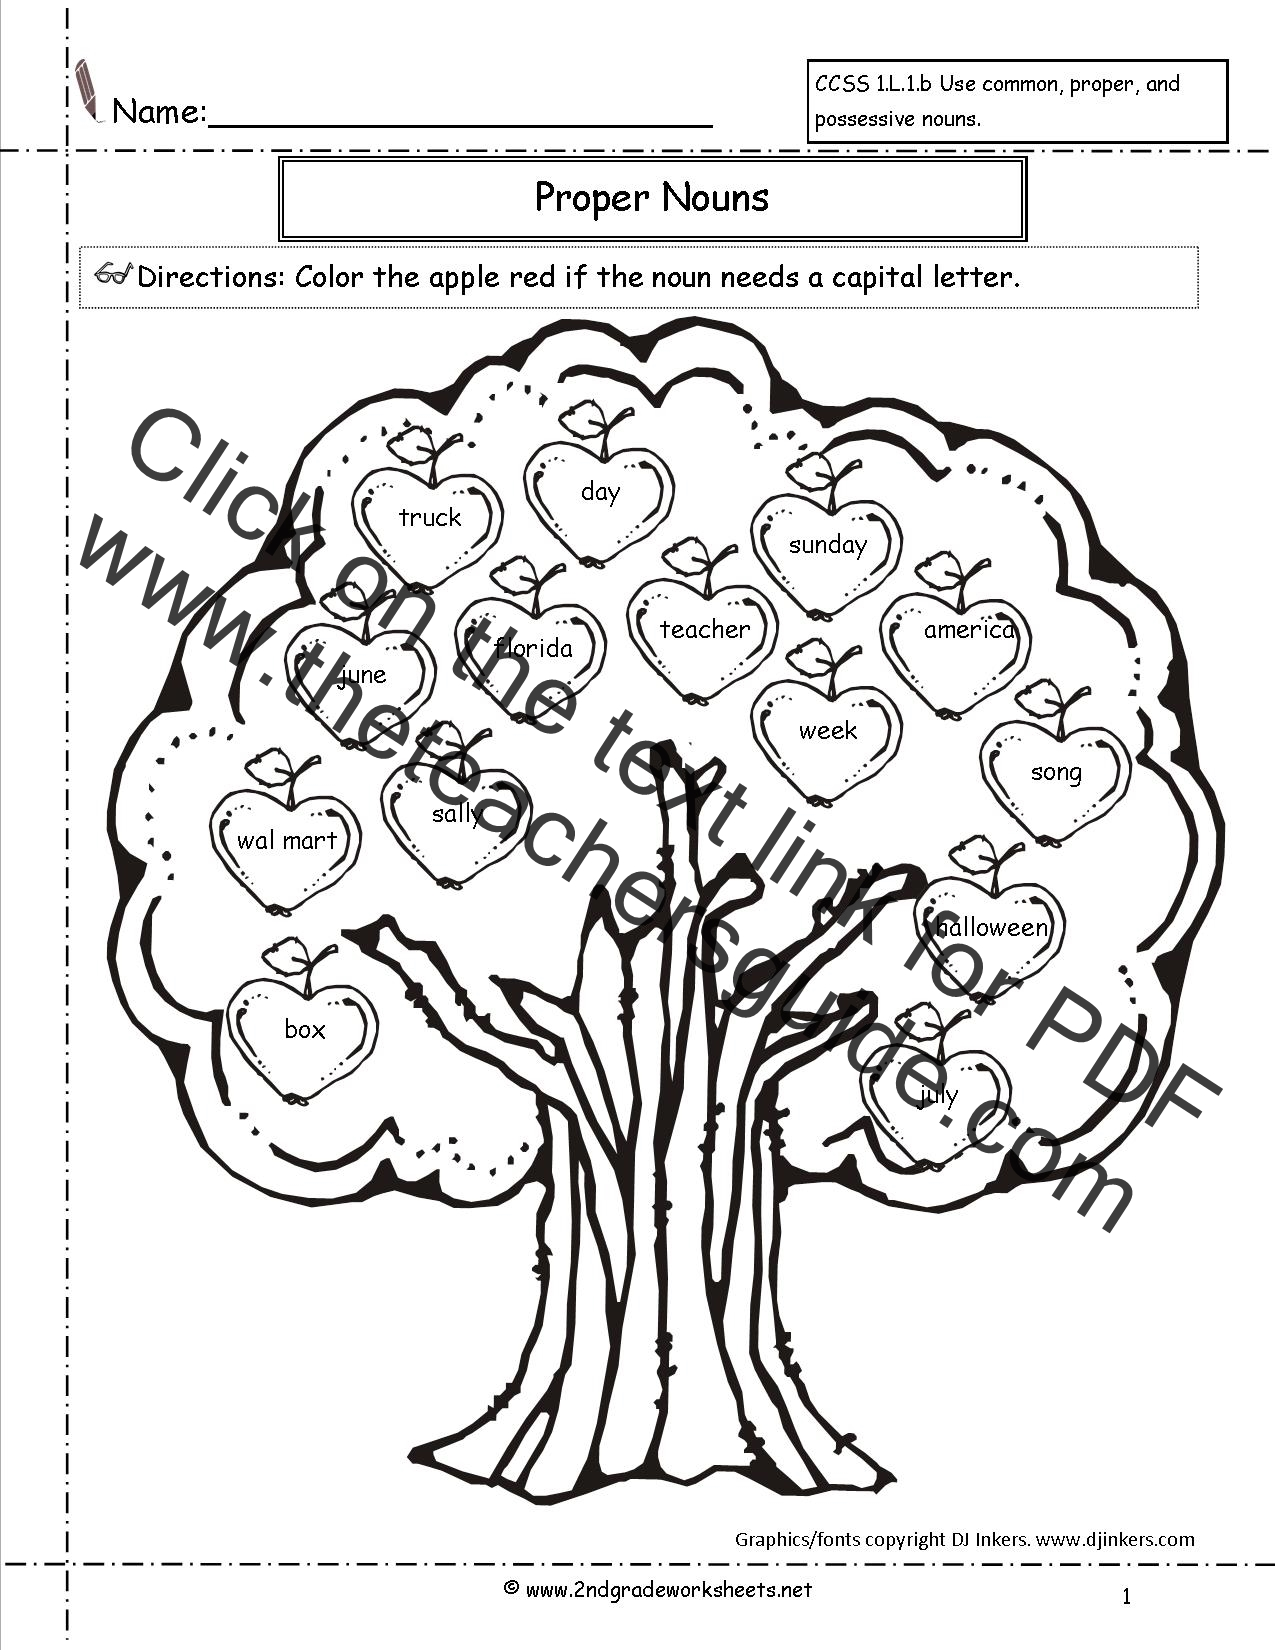 Common and Proper Nouns Worksheets from The Teachers Guide – Nouns Worksheets